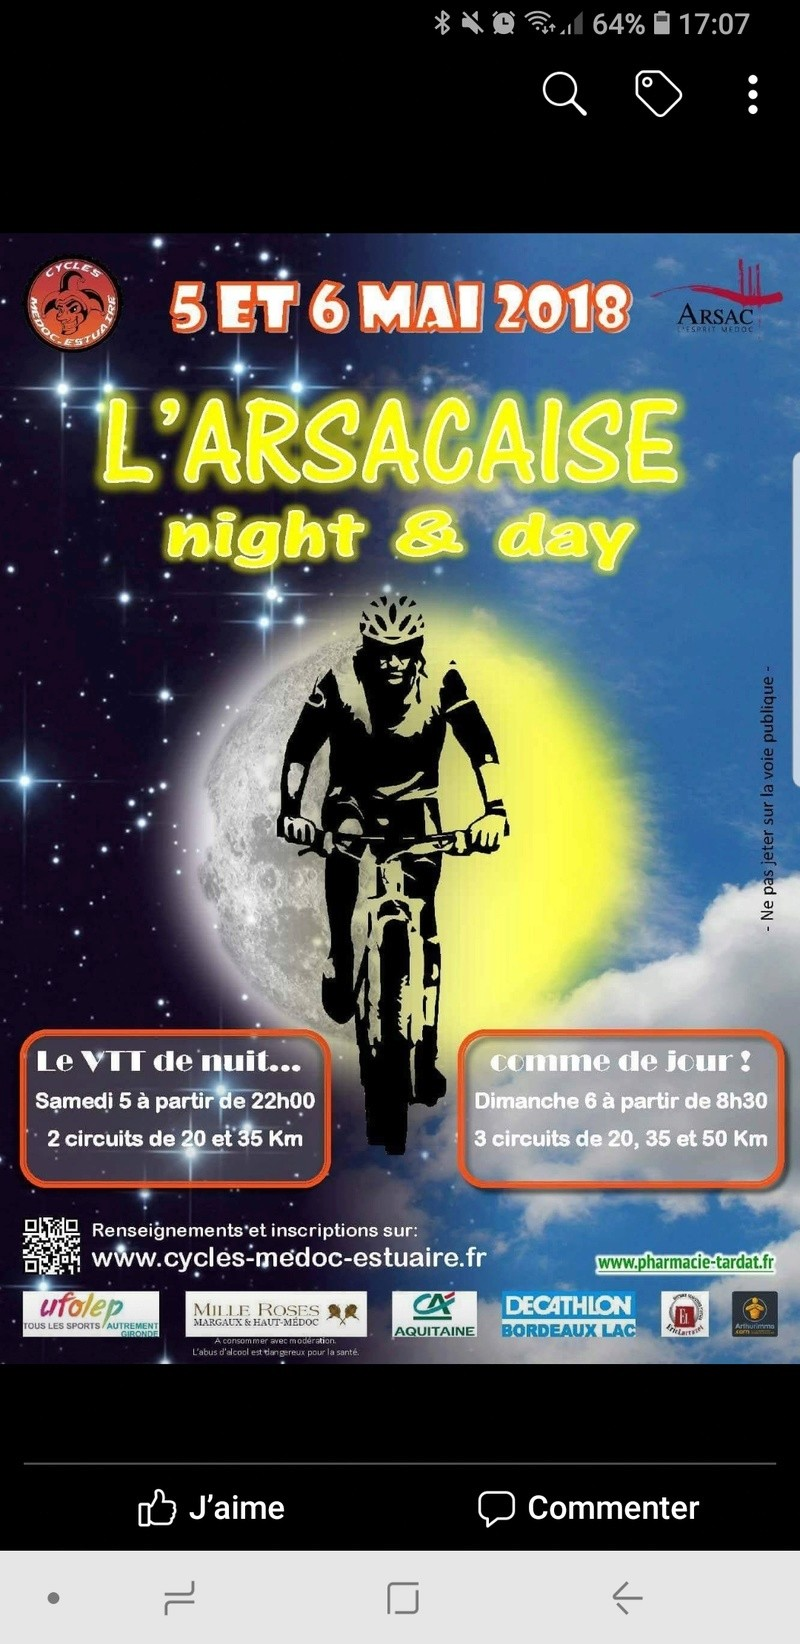 L'Arsacaise Night and Day 2018 le 05 et 06 Mai Screen30